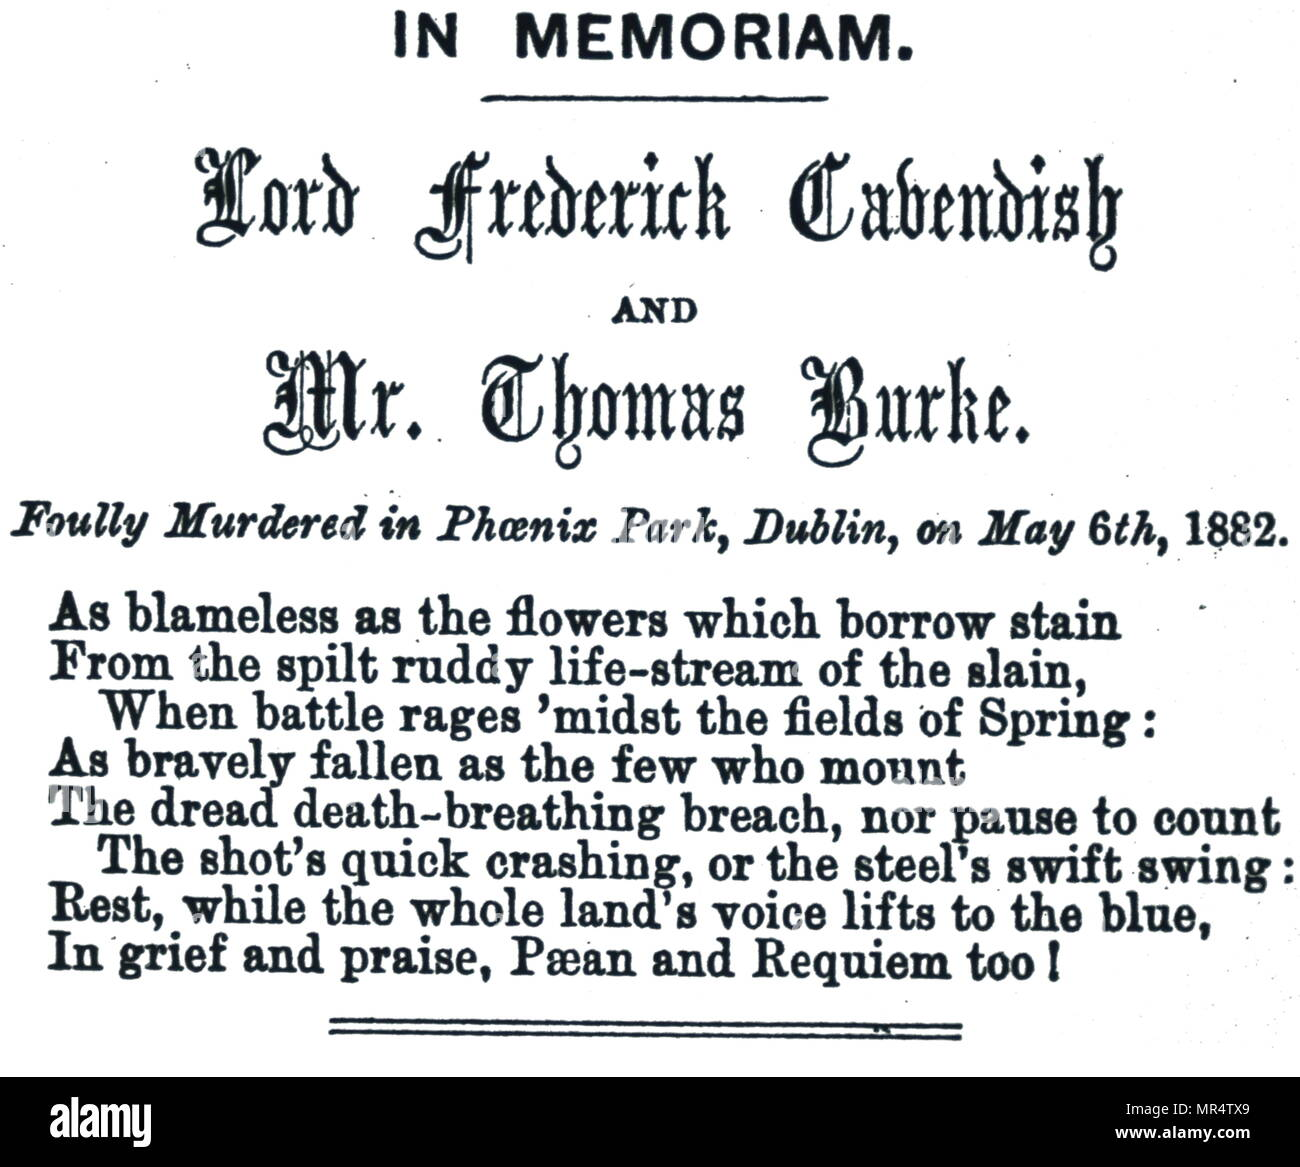 Memorial notice to Lord Frederick Cavendish (1836-1882) an English liberal politician and Thomas Henry Burke (1829-1882) Permanent Under Secretary at the Irish Office. Both Cavendish and Burke were killed during the Phoenix Park Murders by members of the rebel group Irish National Invincibles. Dated 19th century - Stock Image